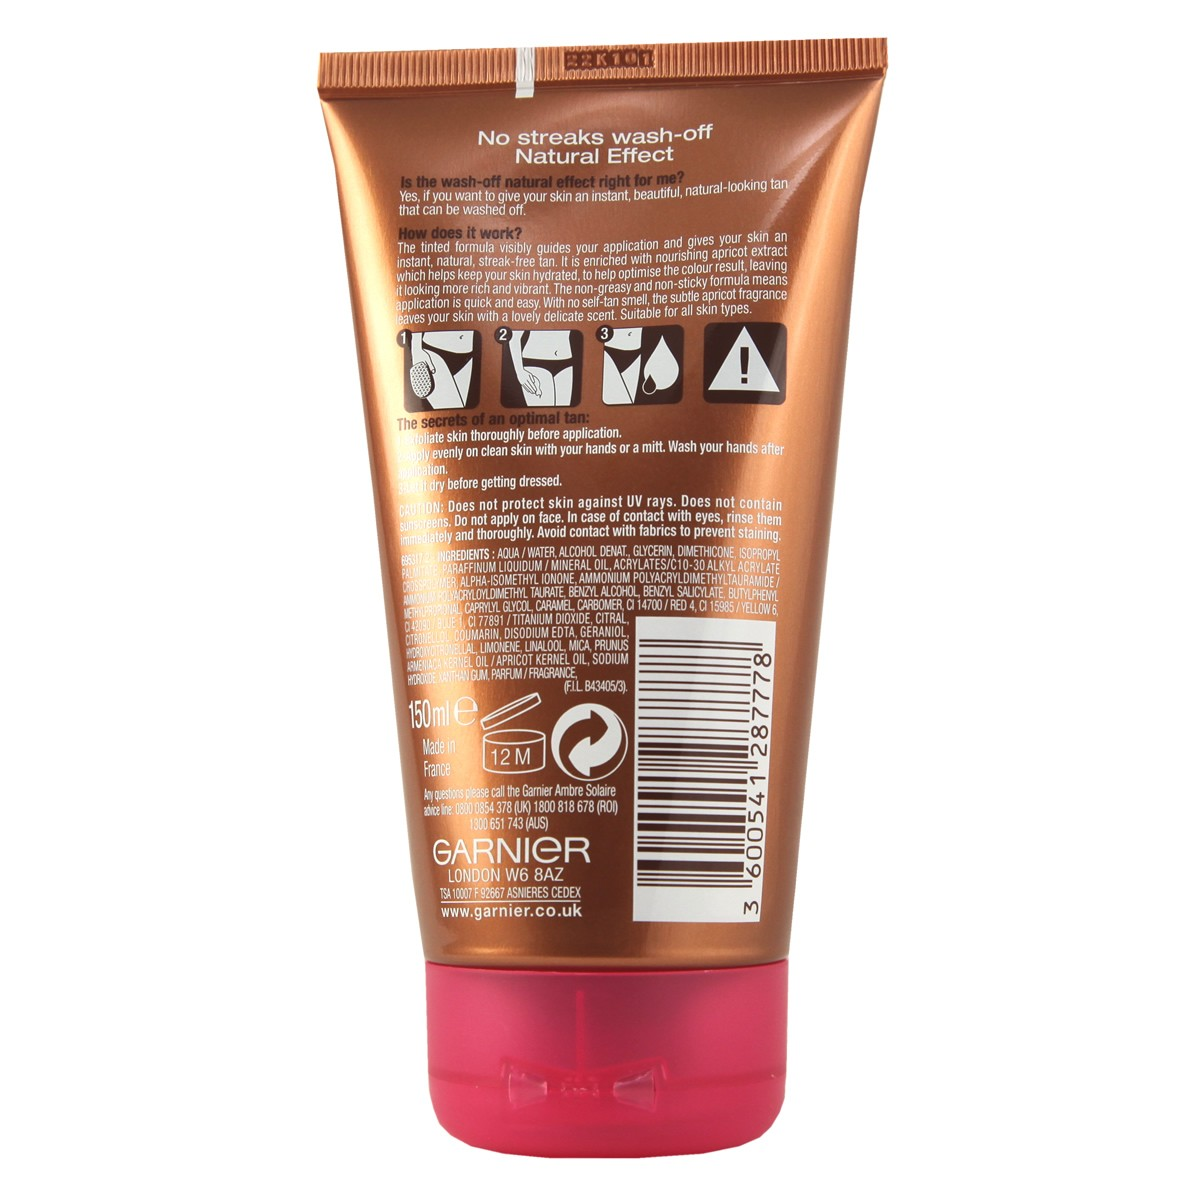 Garnier Ambre Solaire No Streaks Wash Off Natural